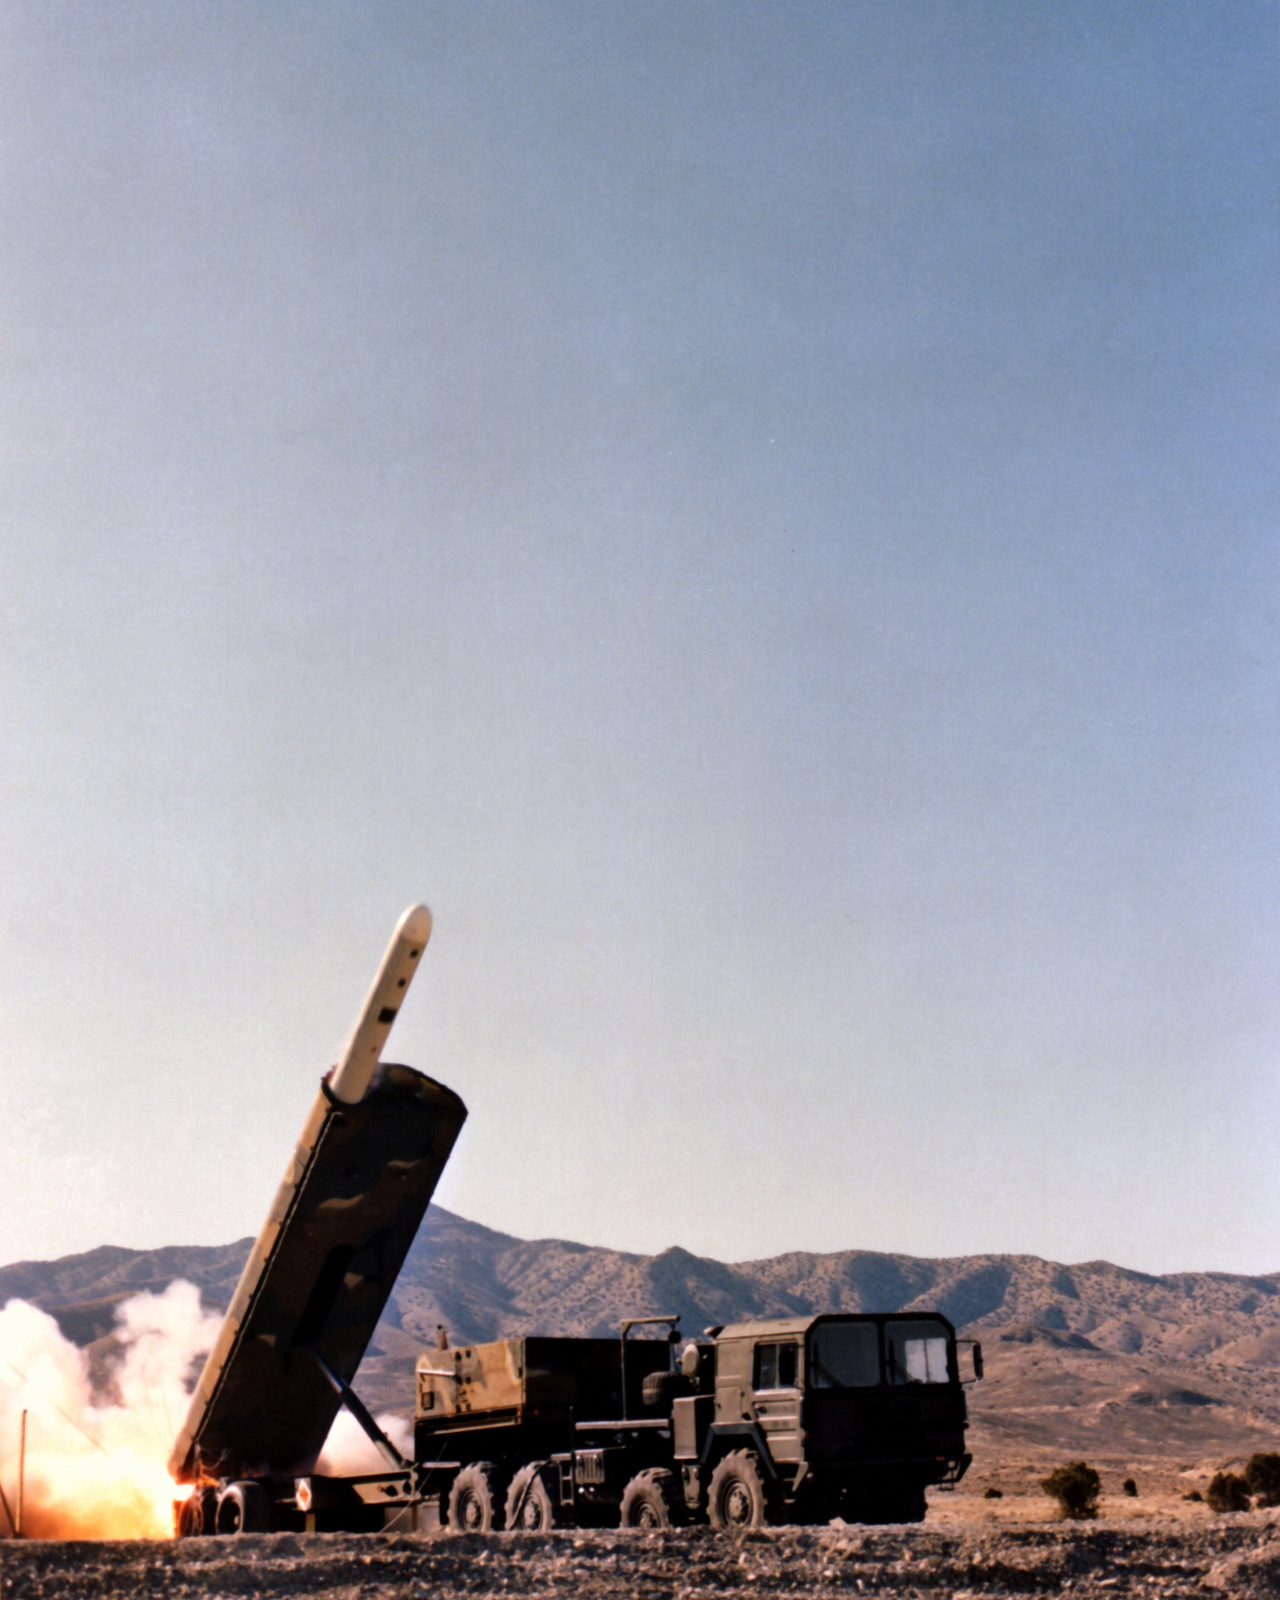 A Ground-Launched Cruise Missile (GLCM) begins to emerge from the Transporter-Erector Launcher (TEL) during a test firing